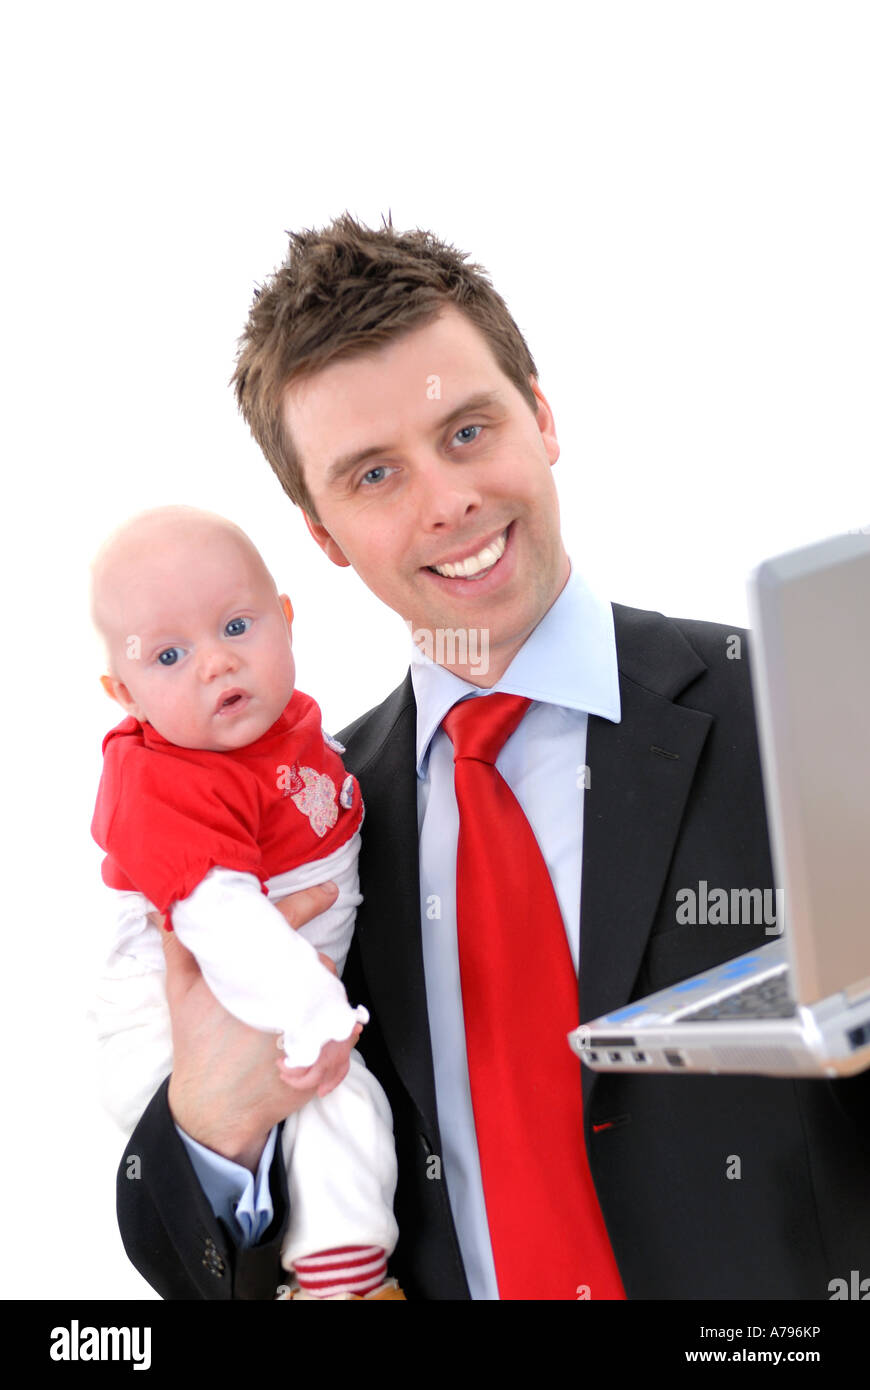 young businessman with small child baby at computer - Stock Image